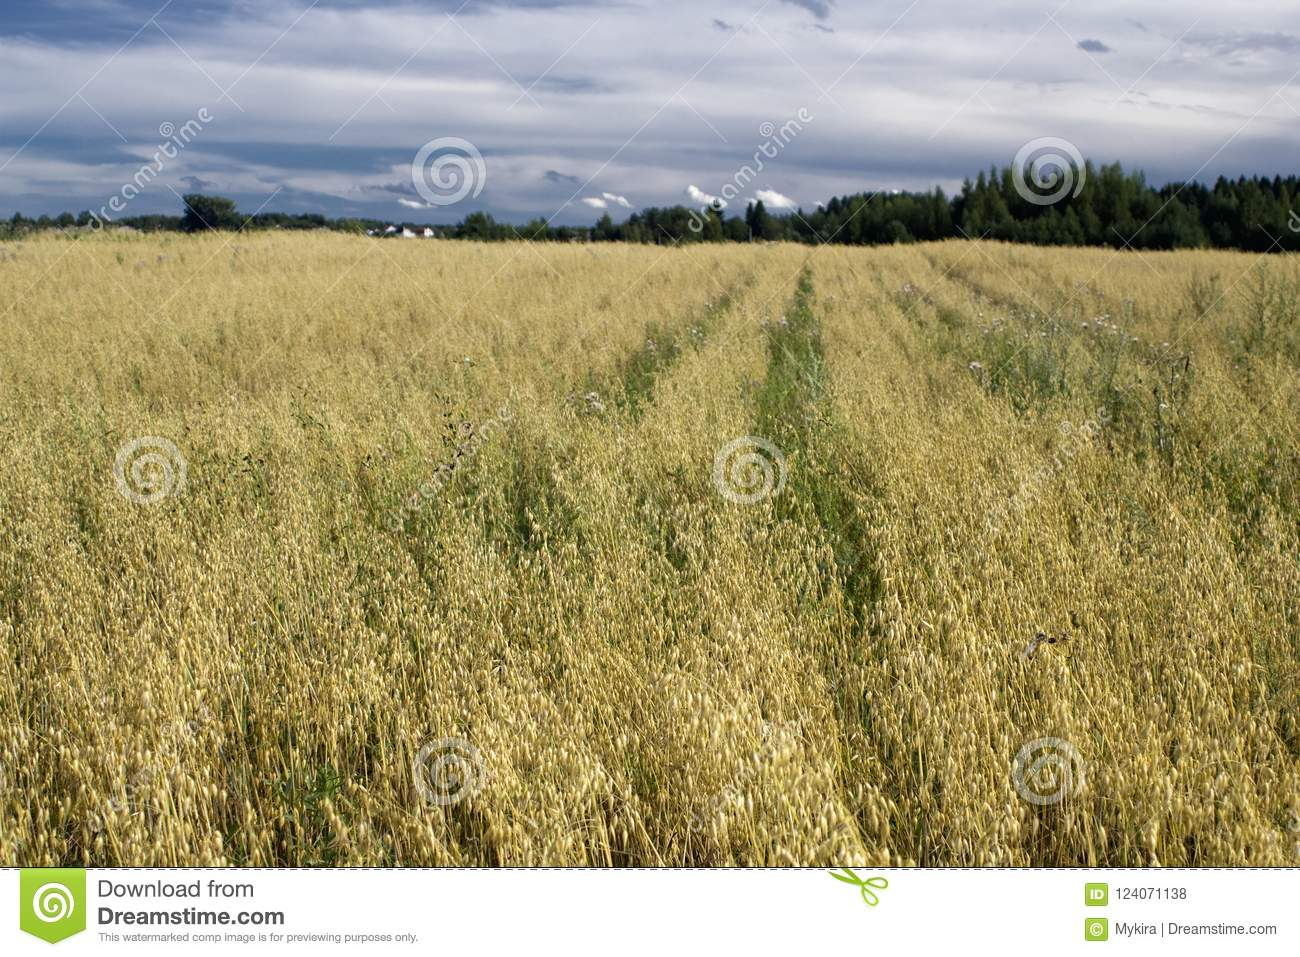 Download Rural Landscape, Terrain With Oat Fields And Cloudy Sky Stock Photo - Image of landscape, beauty: 124071138